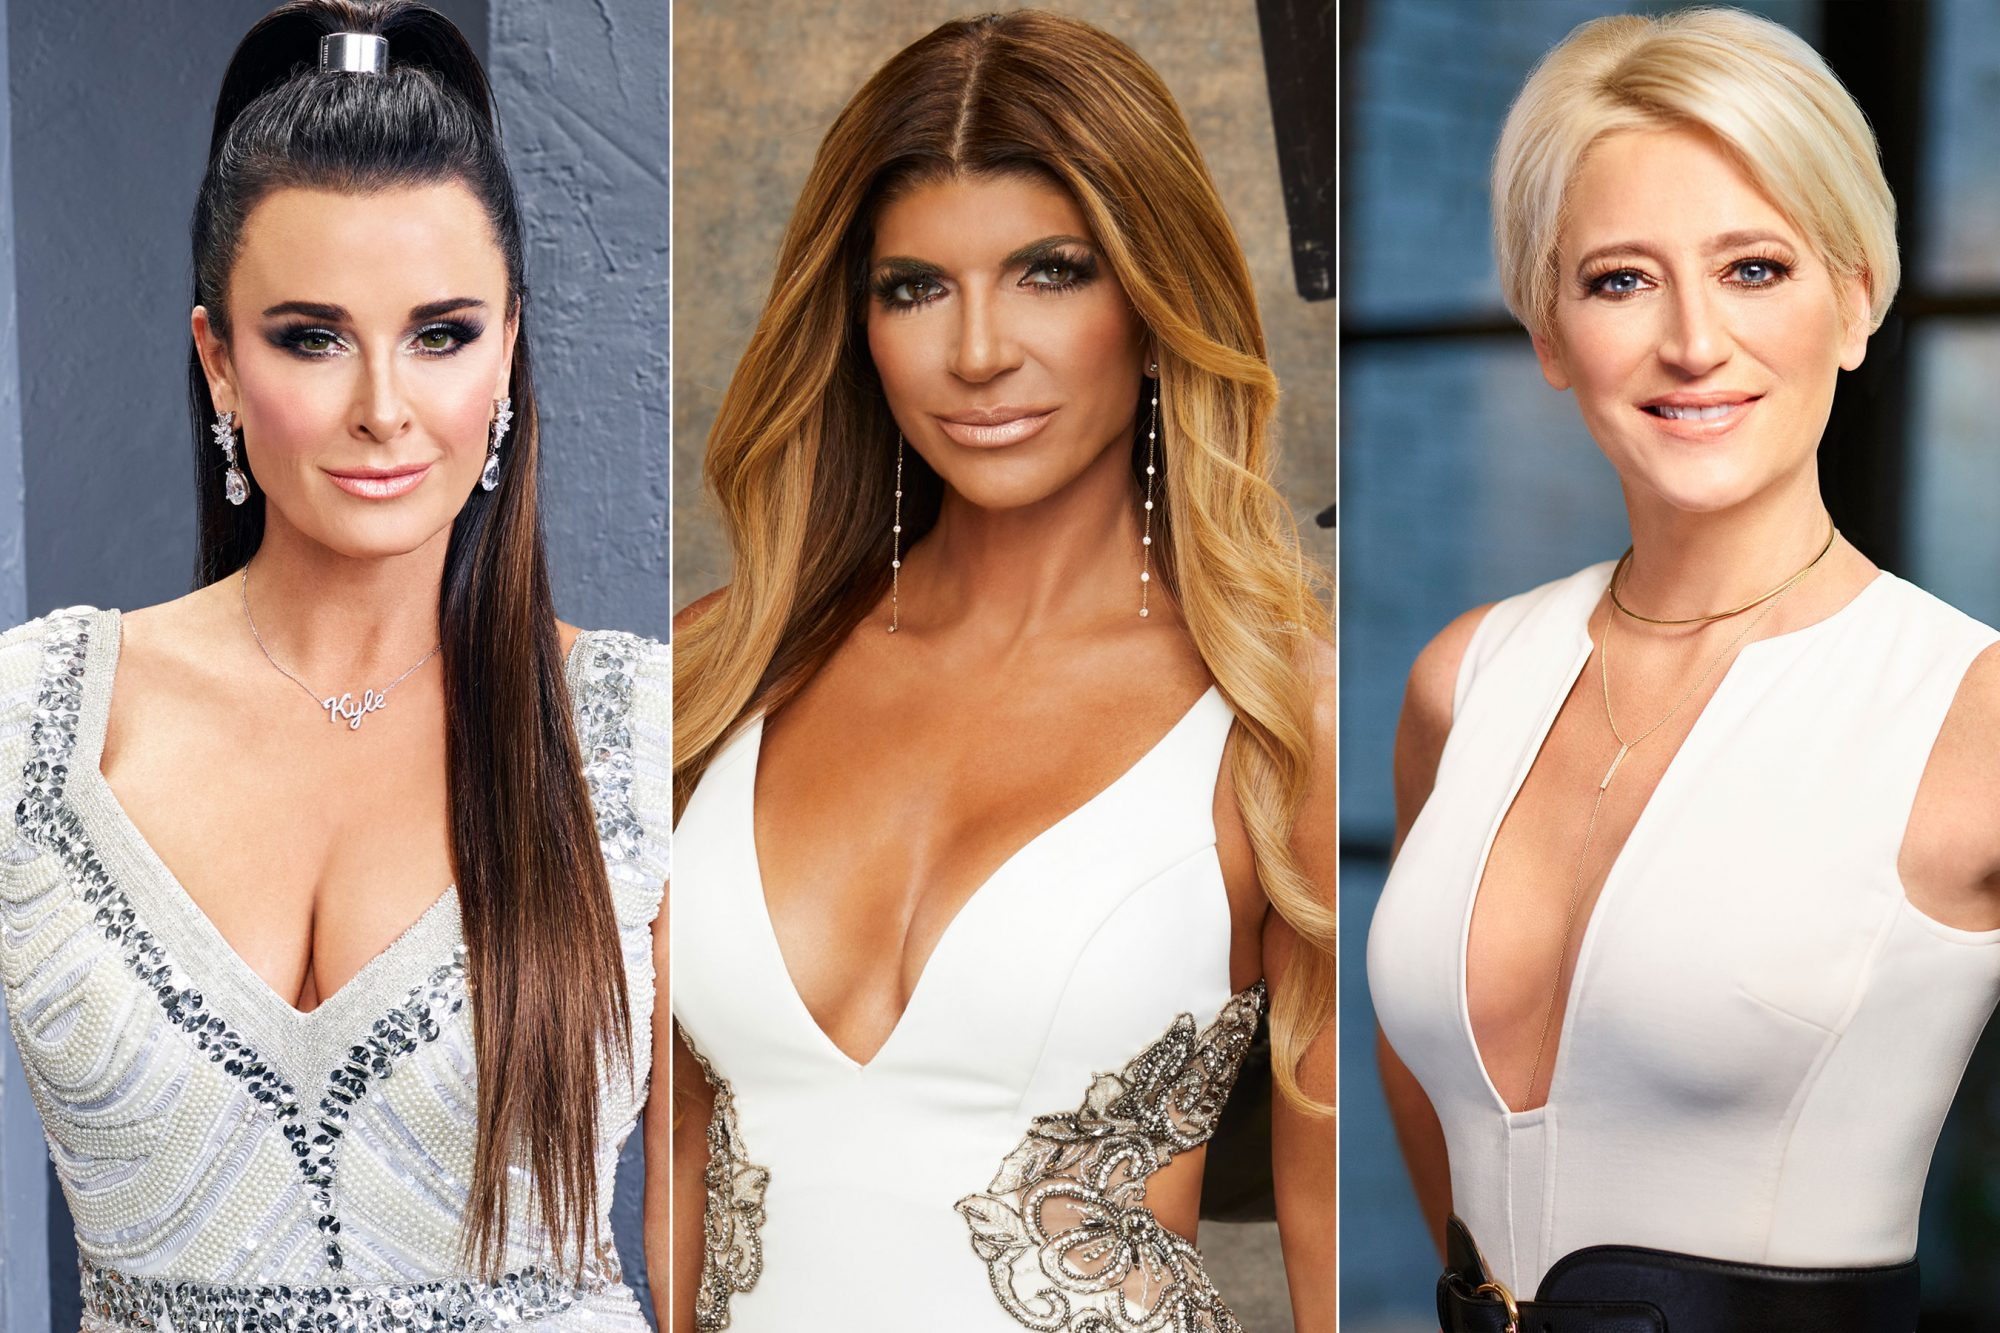 11 iconic gifts inspired by The Real Housewives